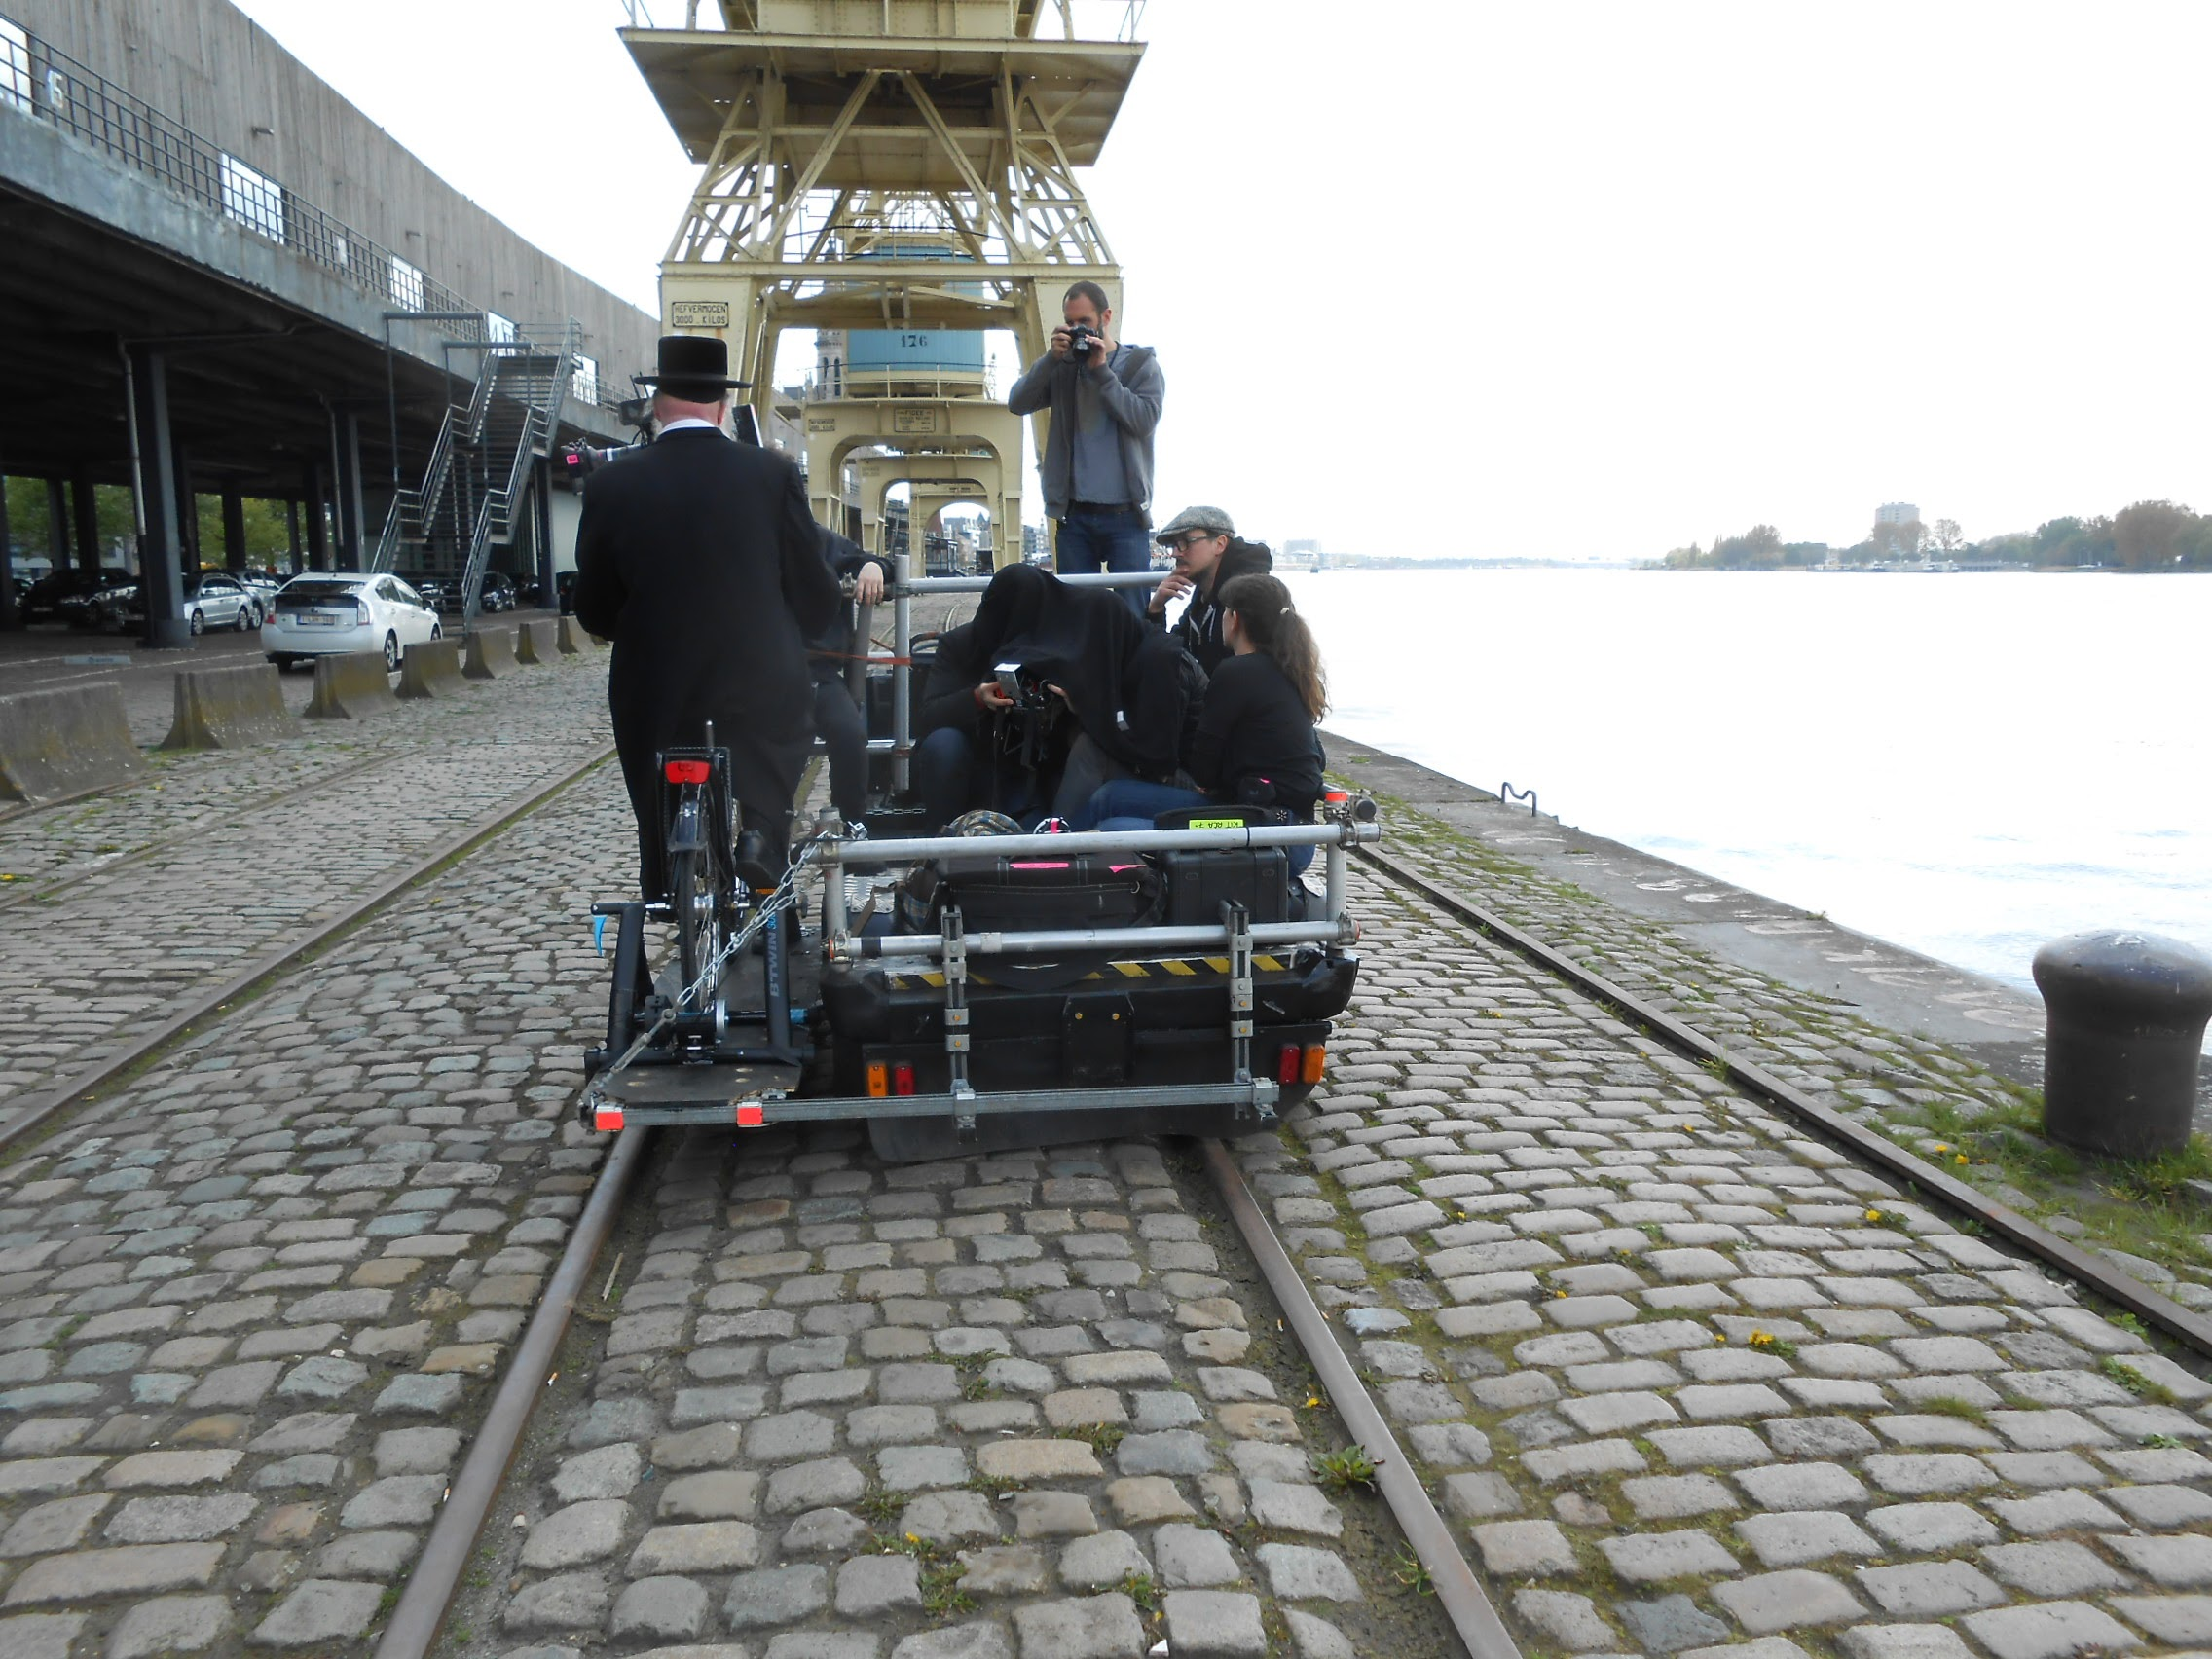 tournage-docu-fiction-anvers-alexis-veller-13